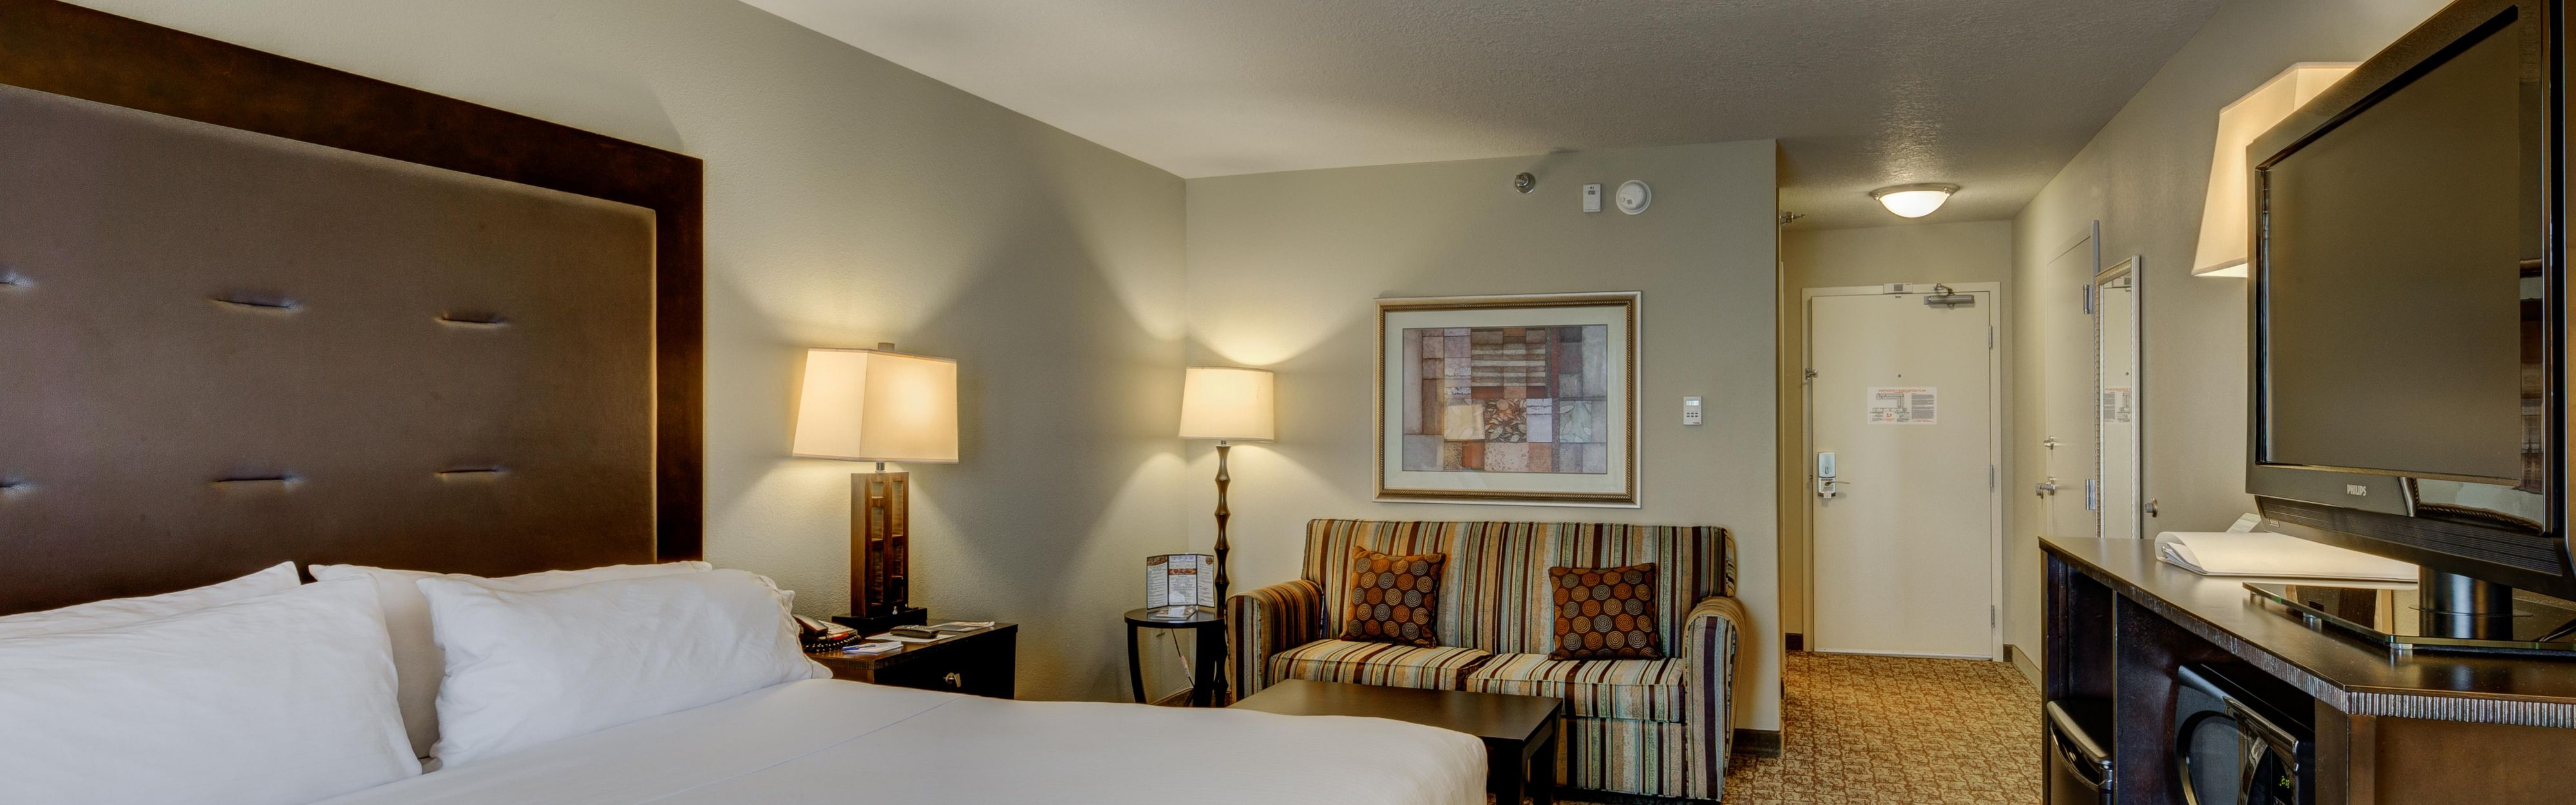 Holiday Inn Express Columbus - Dublin image 1